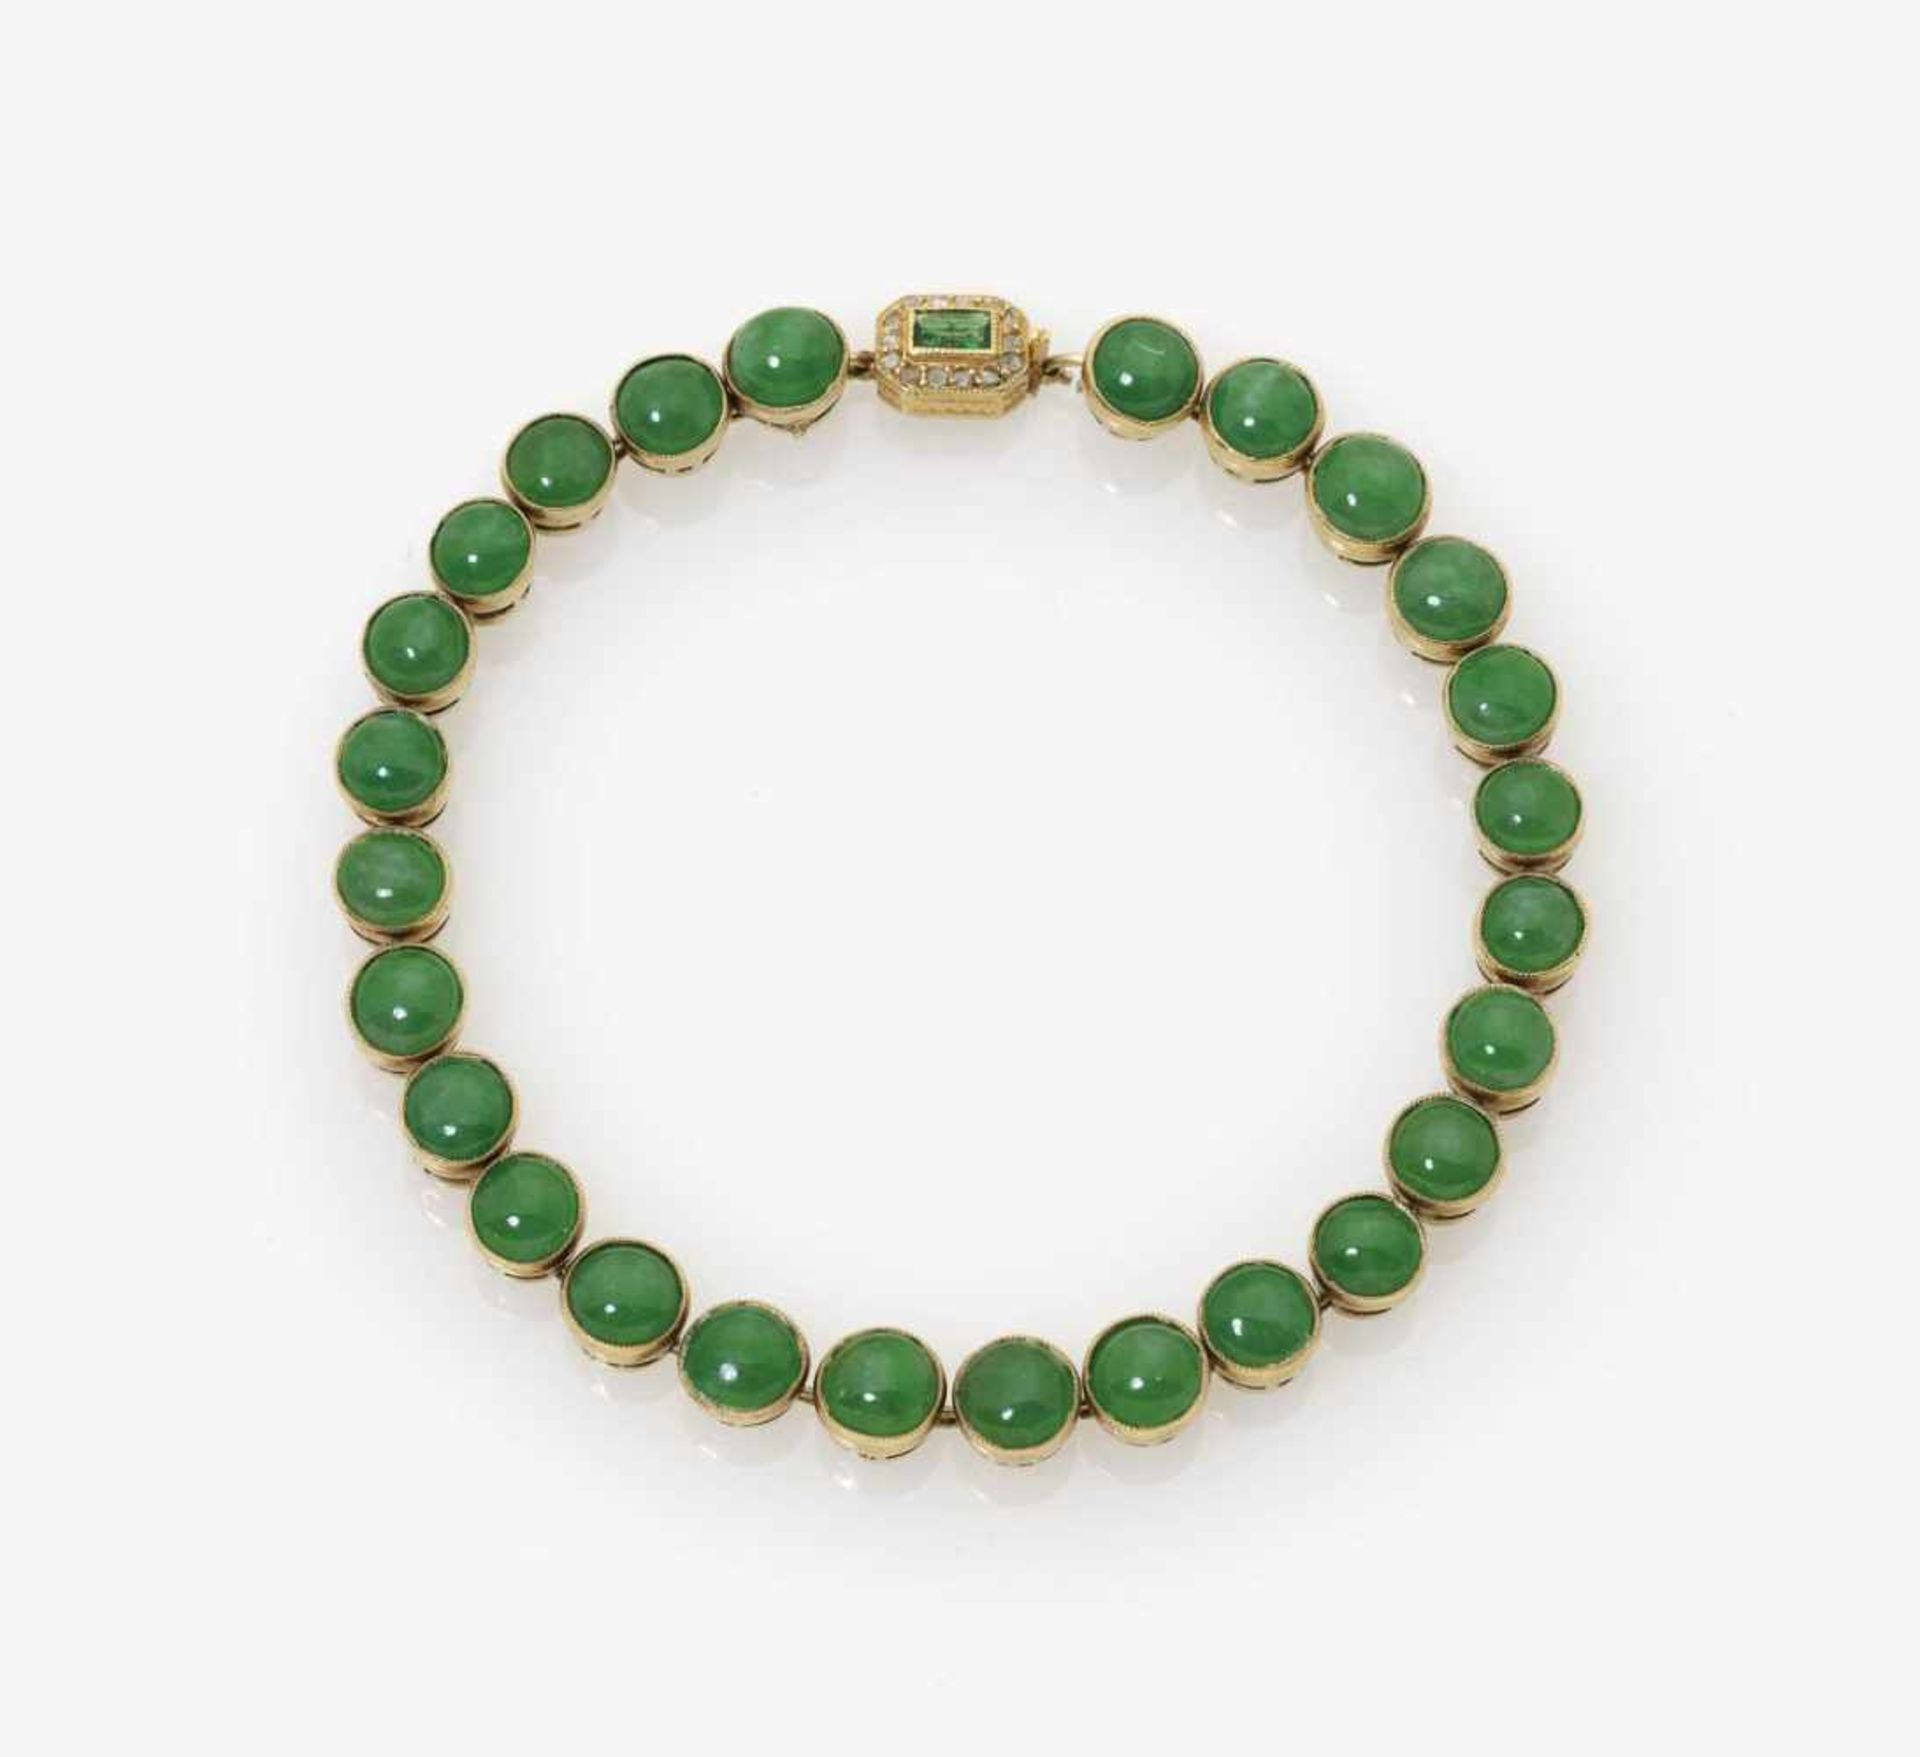 Los 1009 - zurückgezogen / withdrawn---A Jade Bracelet with Emerald and Diamond ClaspParis, circa 1920 18k